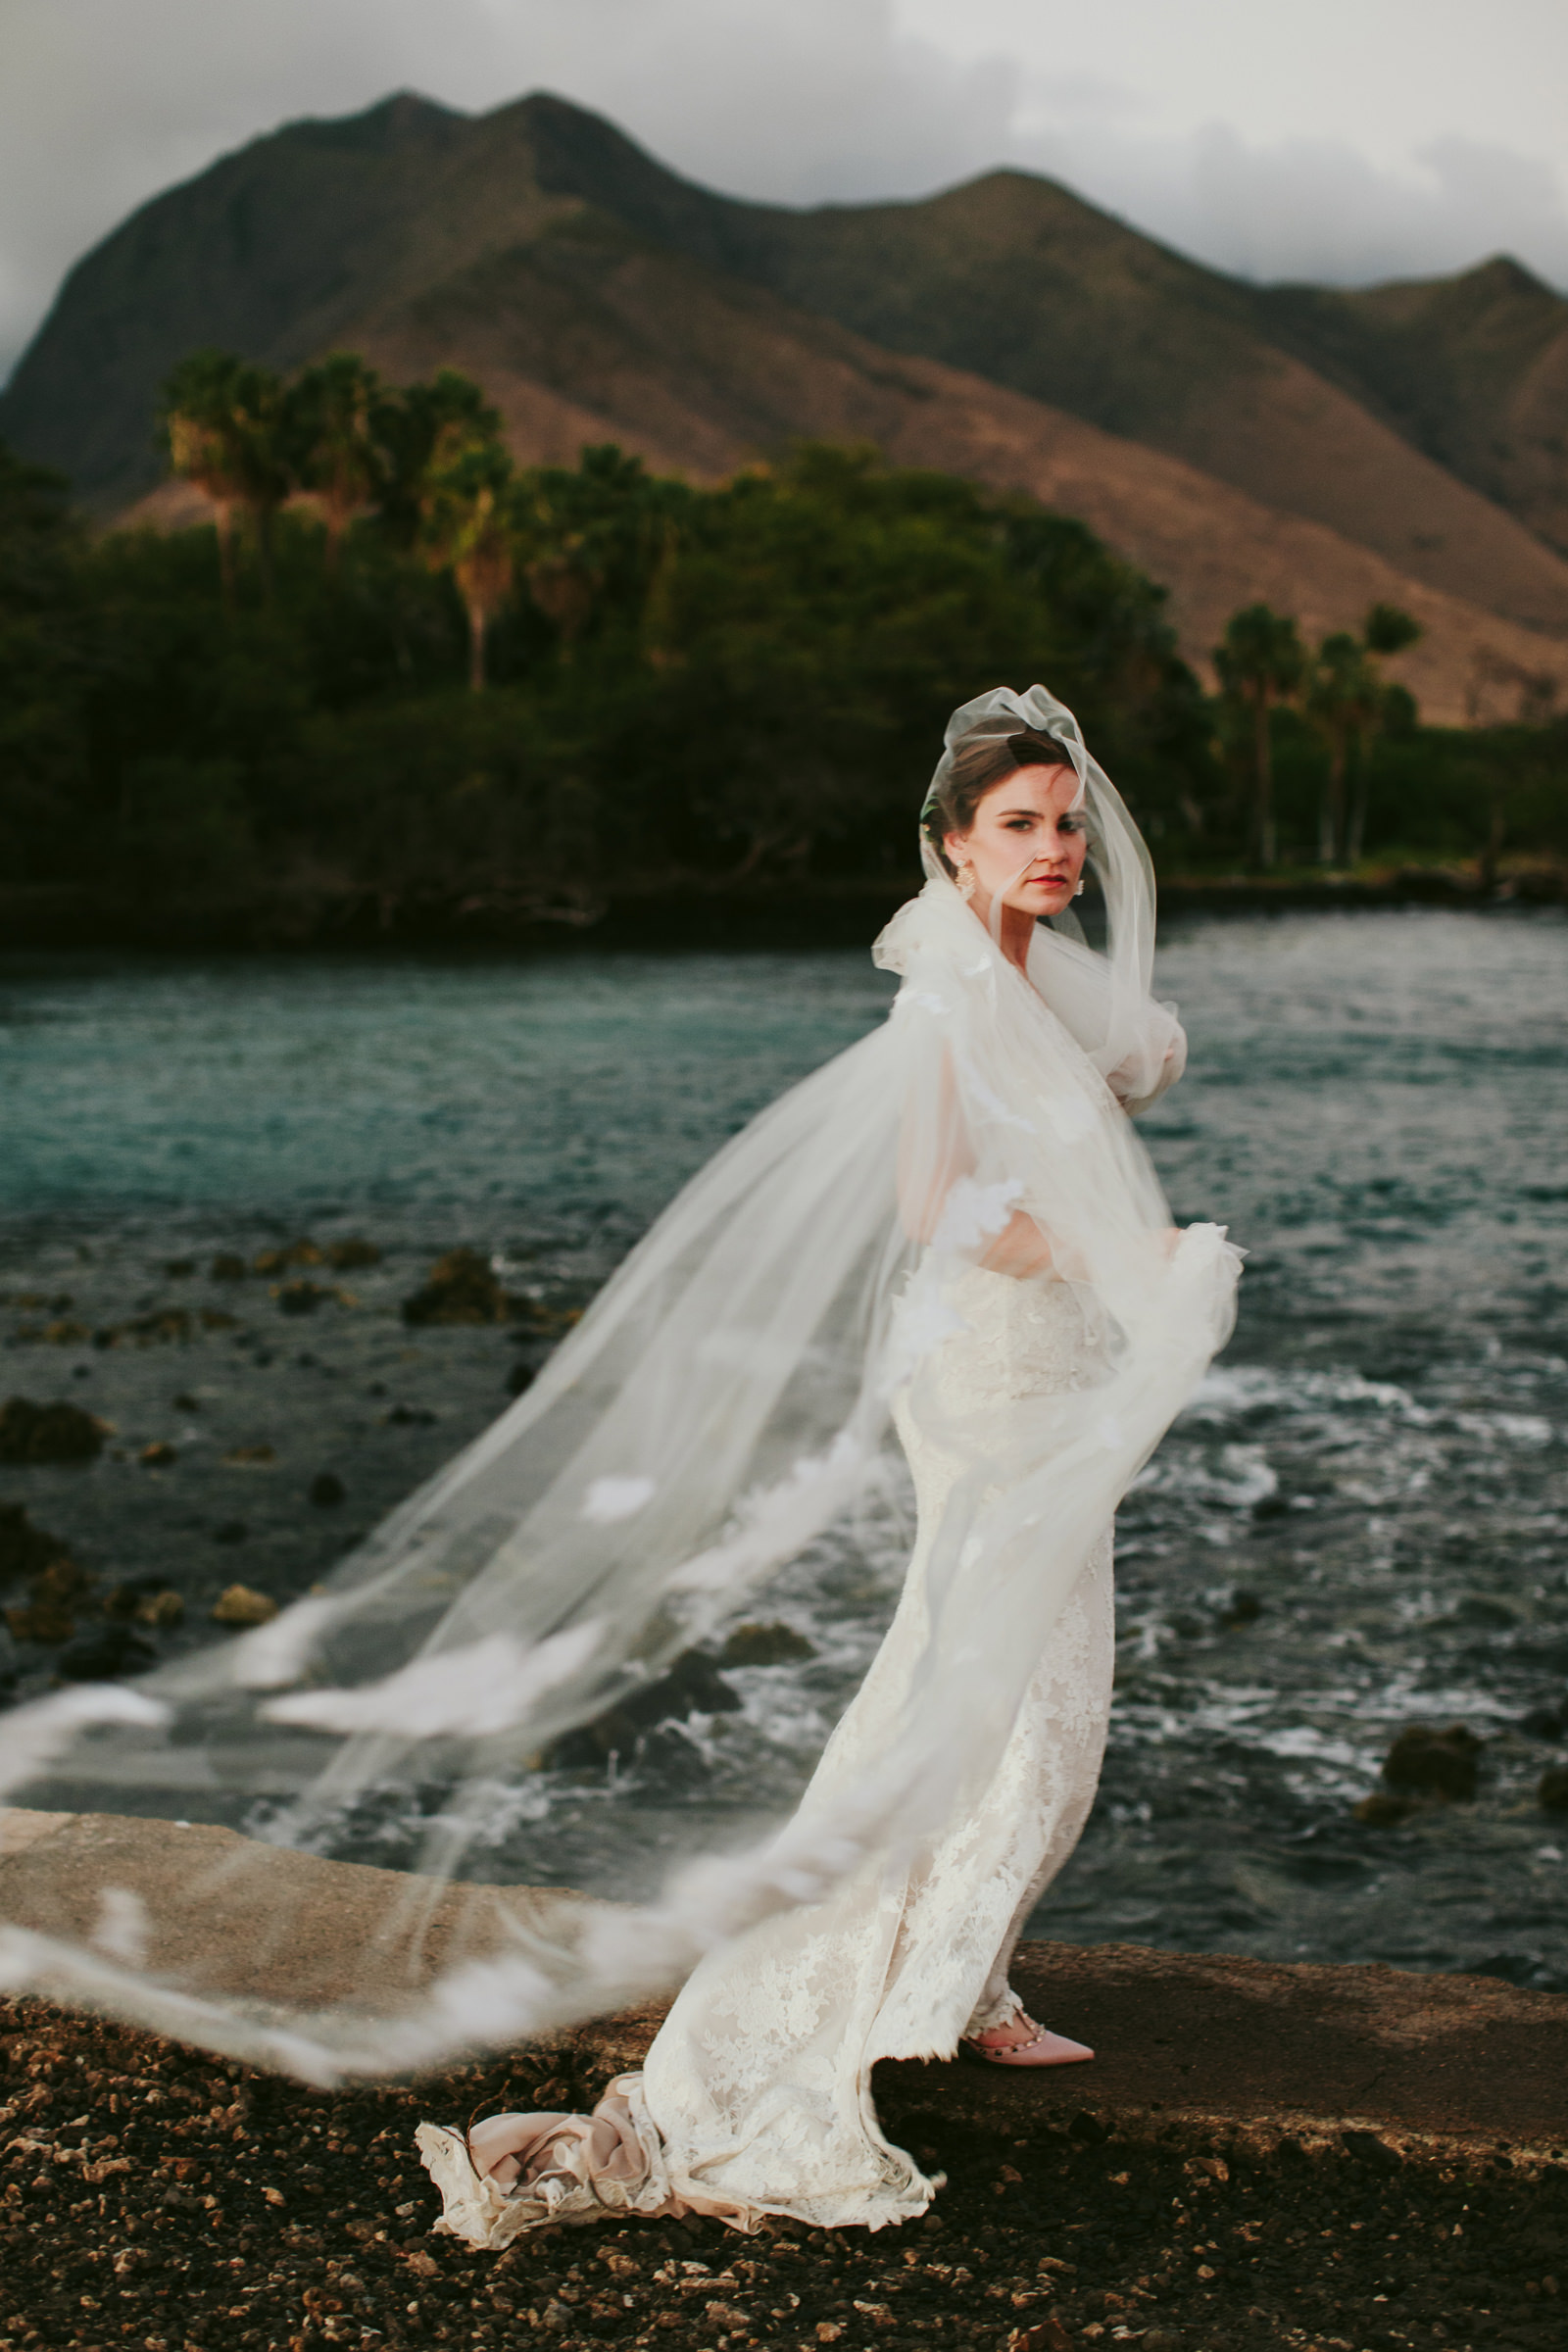 Bride at waters edge olowalu plantation house maui - photo by Melia Lucida